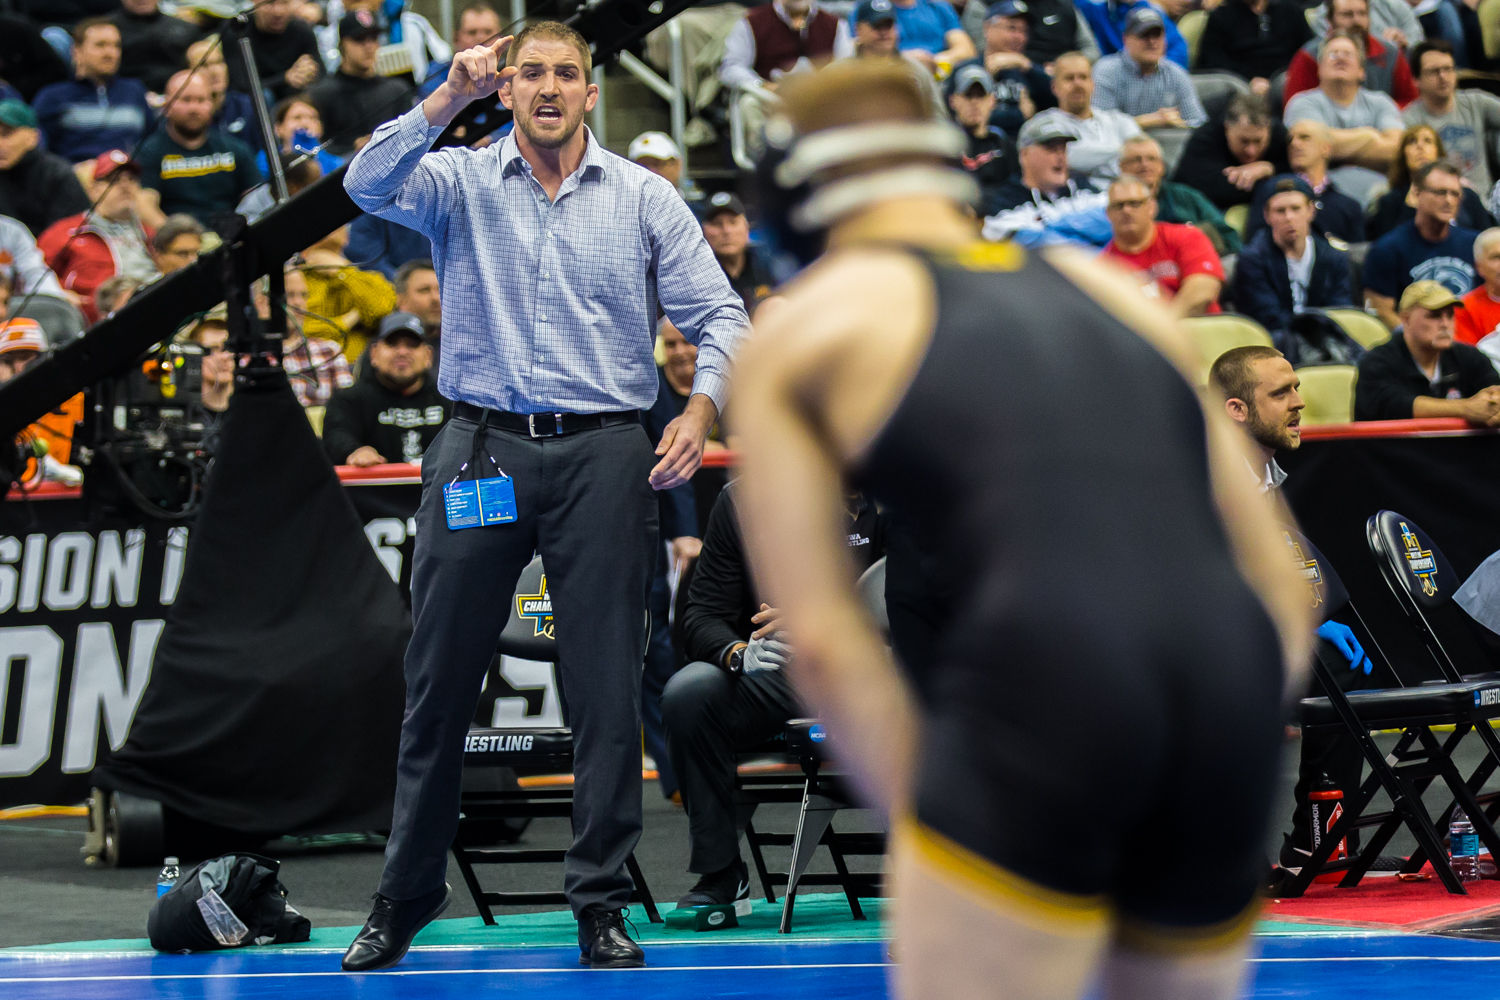 Iowa+assistant+coach+Bobby+Telford+yells+to+Spencer+Lee+during+the+fourth+session+of+the+2019+NCAA+D1+Wrestling+Championships+at+PPG+Paints+Arena+in+Pittsburgh%2C+PA+on+Friday%2C+March+22%2C+2019.